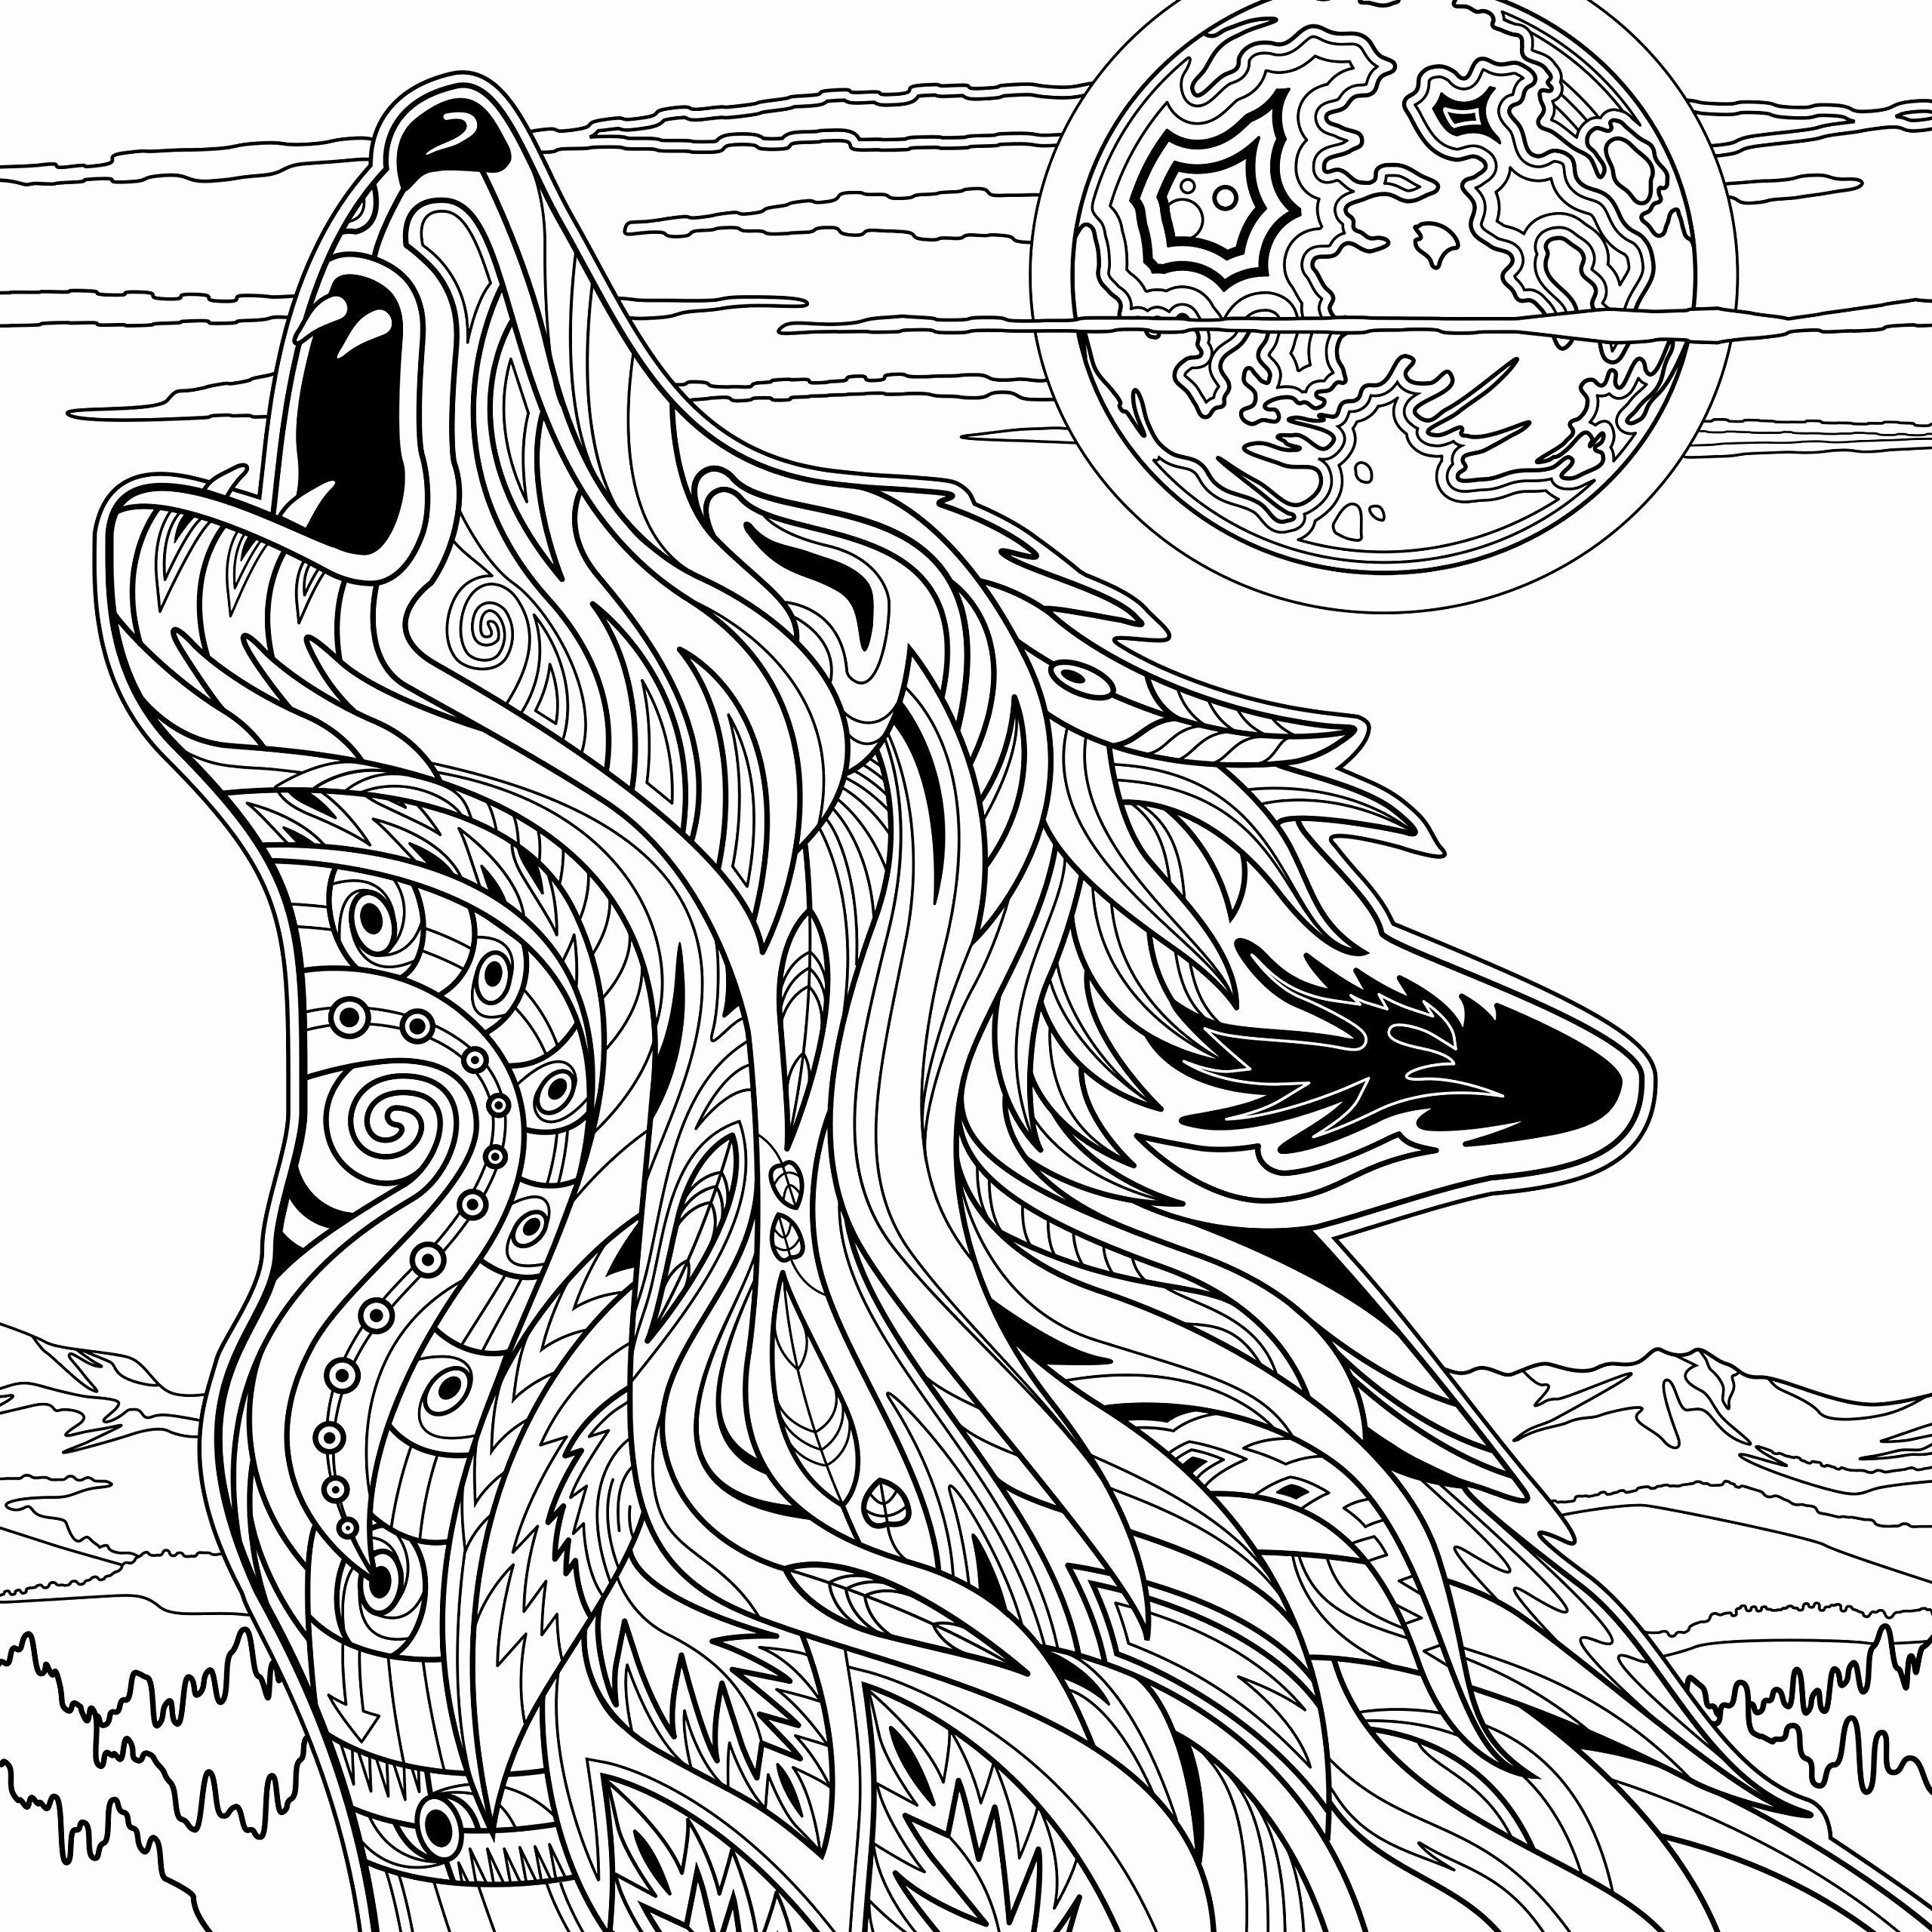 Nature Coloring Sheets For Adults Animal Coloring Pages Mandala Coloring Horse Coloring Pages